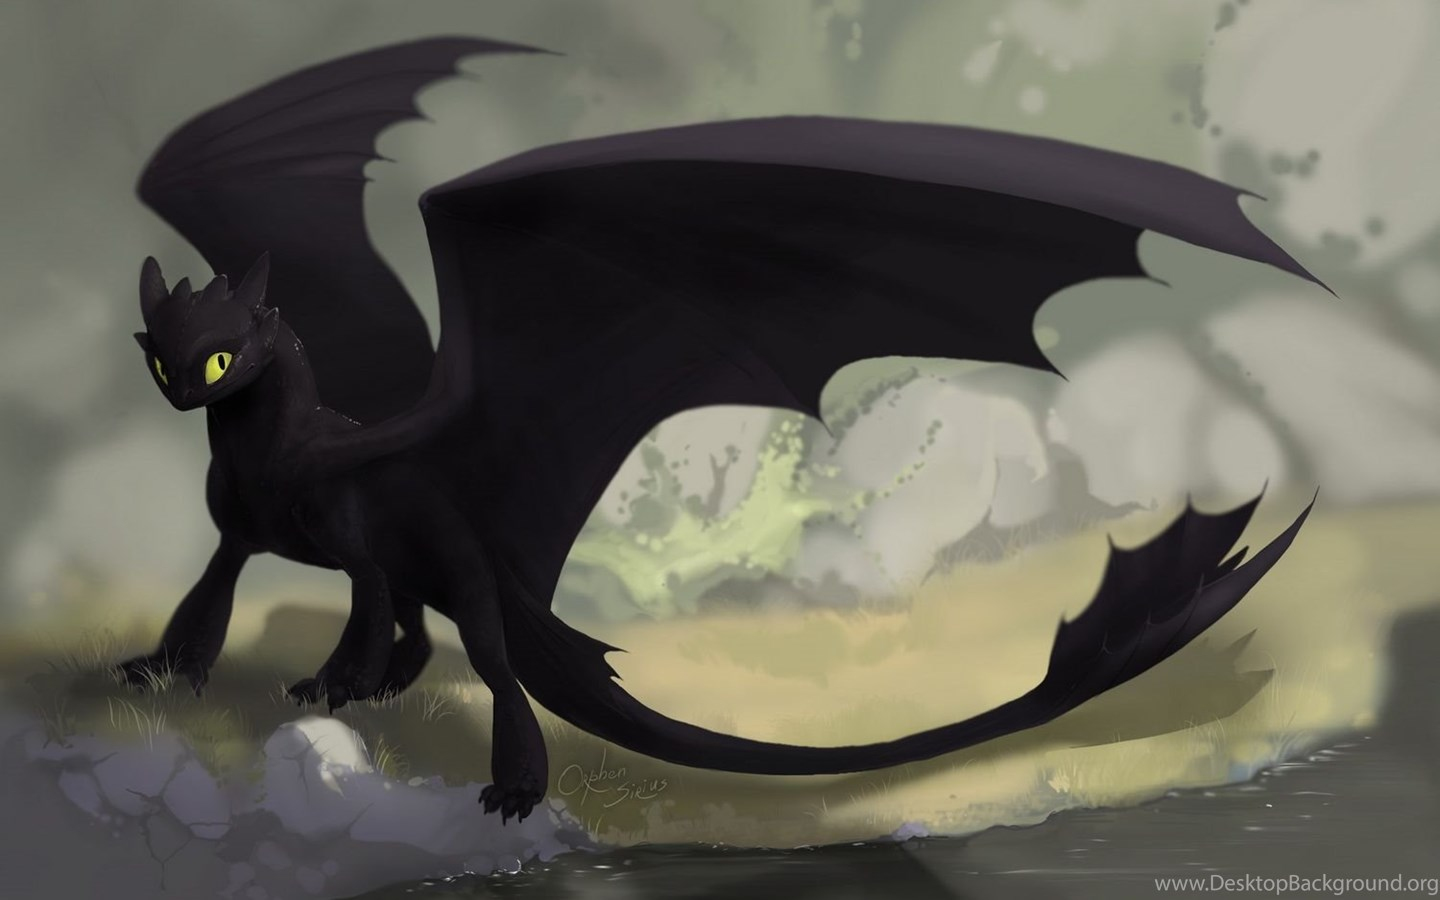 Toothless Night Fury Wallpaper Hd Beautiful Toothless Wallpaper1 Desktop Background